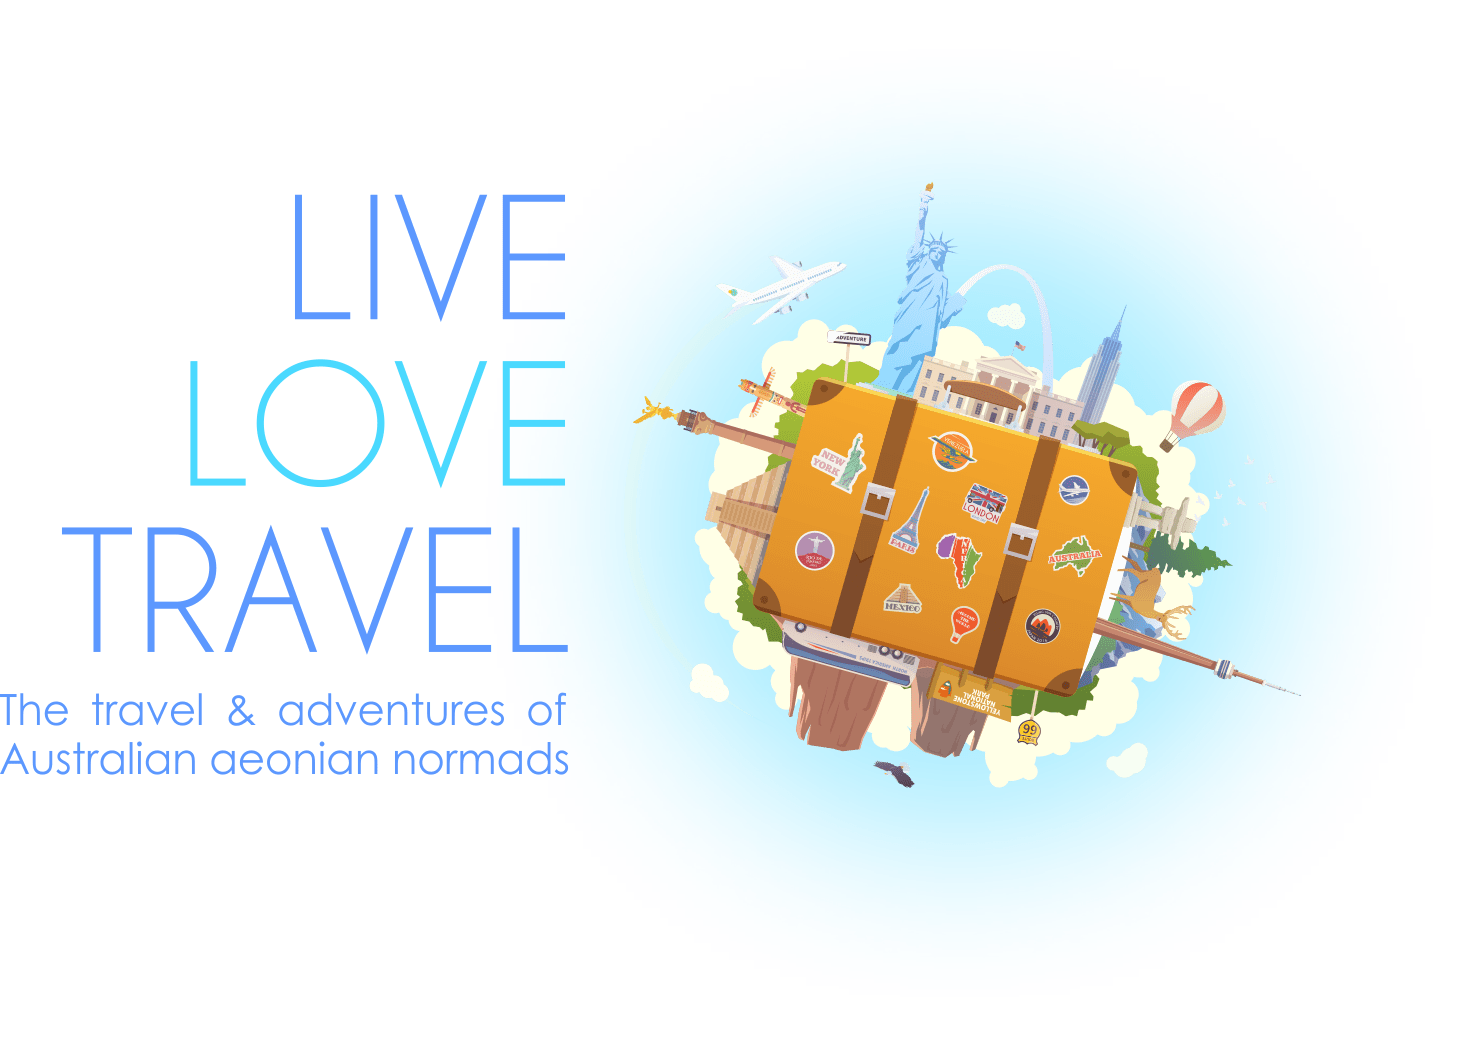 Aeonian Nomads - The Over 50's Travel & Adventure Guide